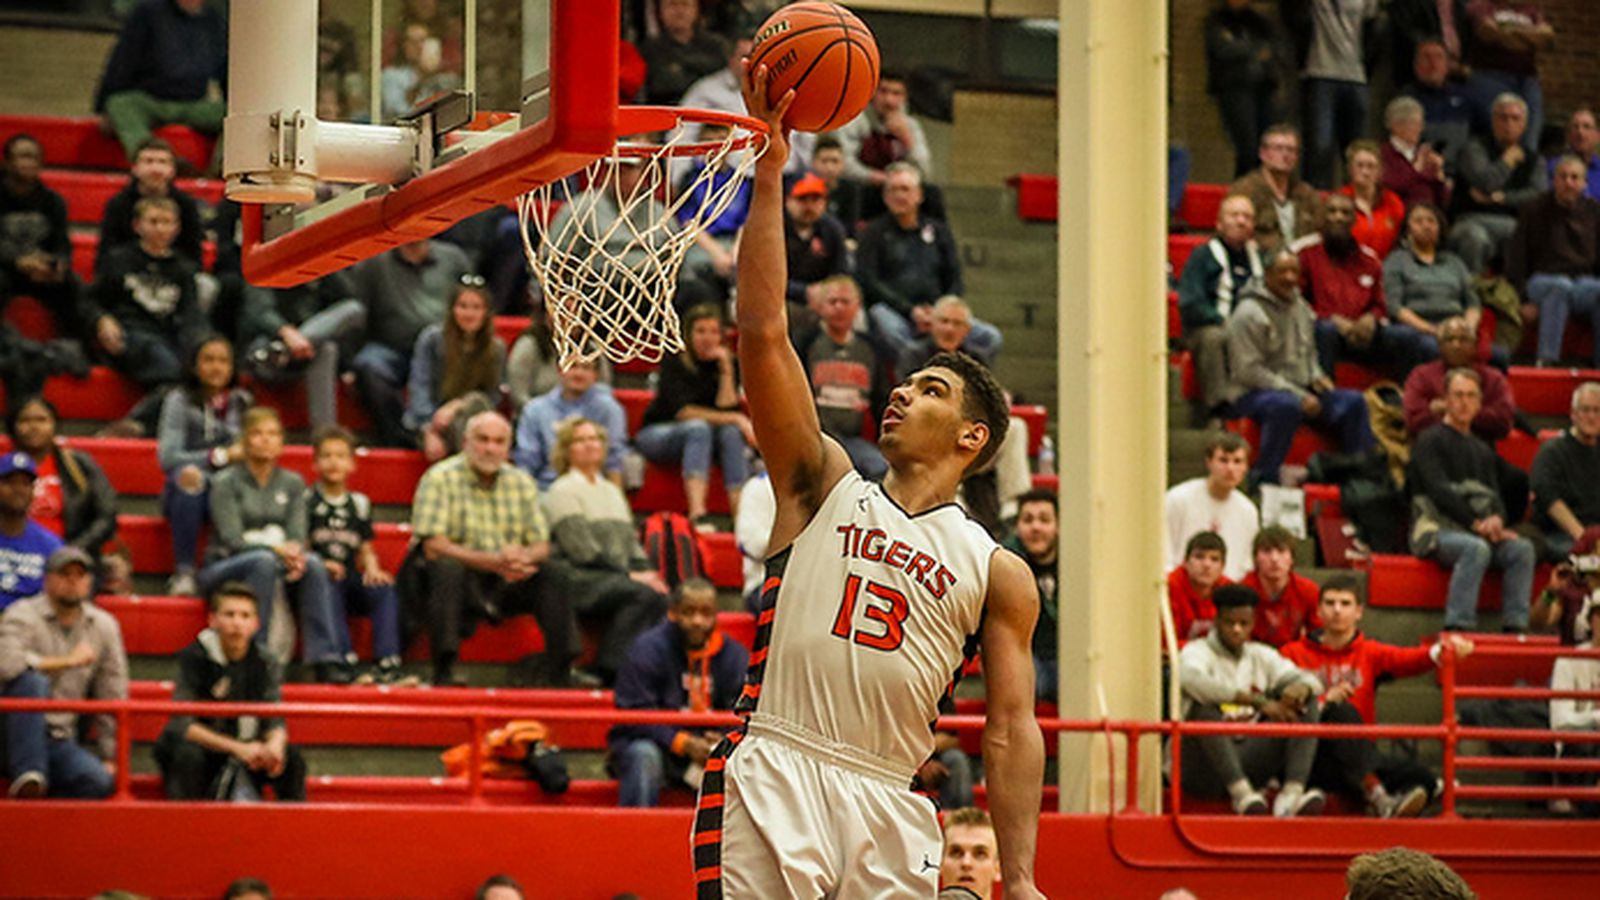 2013 Recruits Uk Basketball And Football Recruiting News: Four-star Guard Mark Smith Commits To Illinois Over